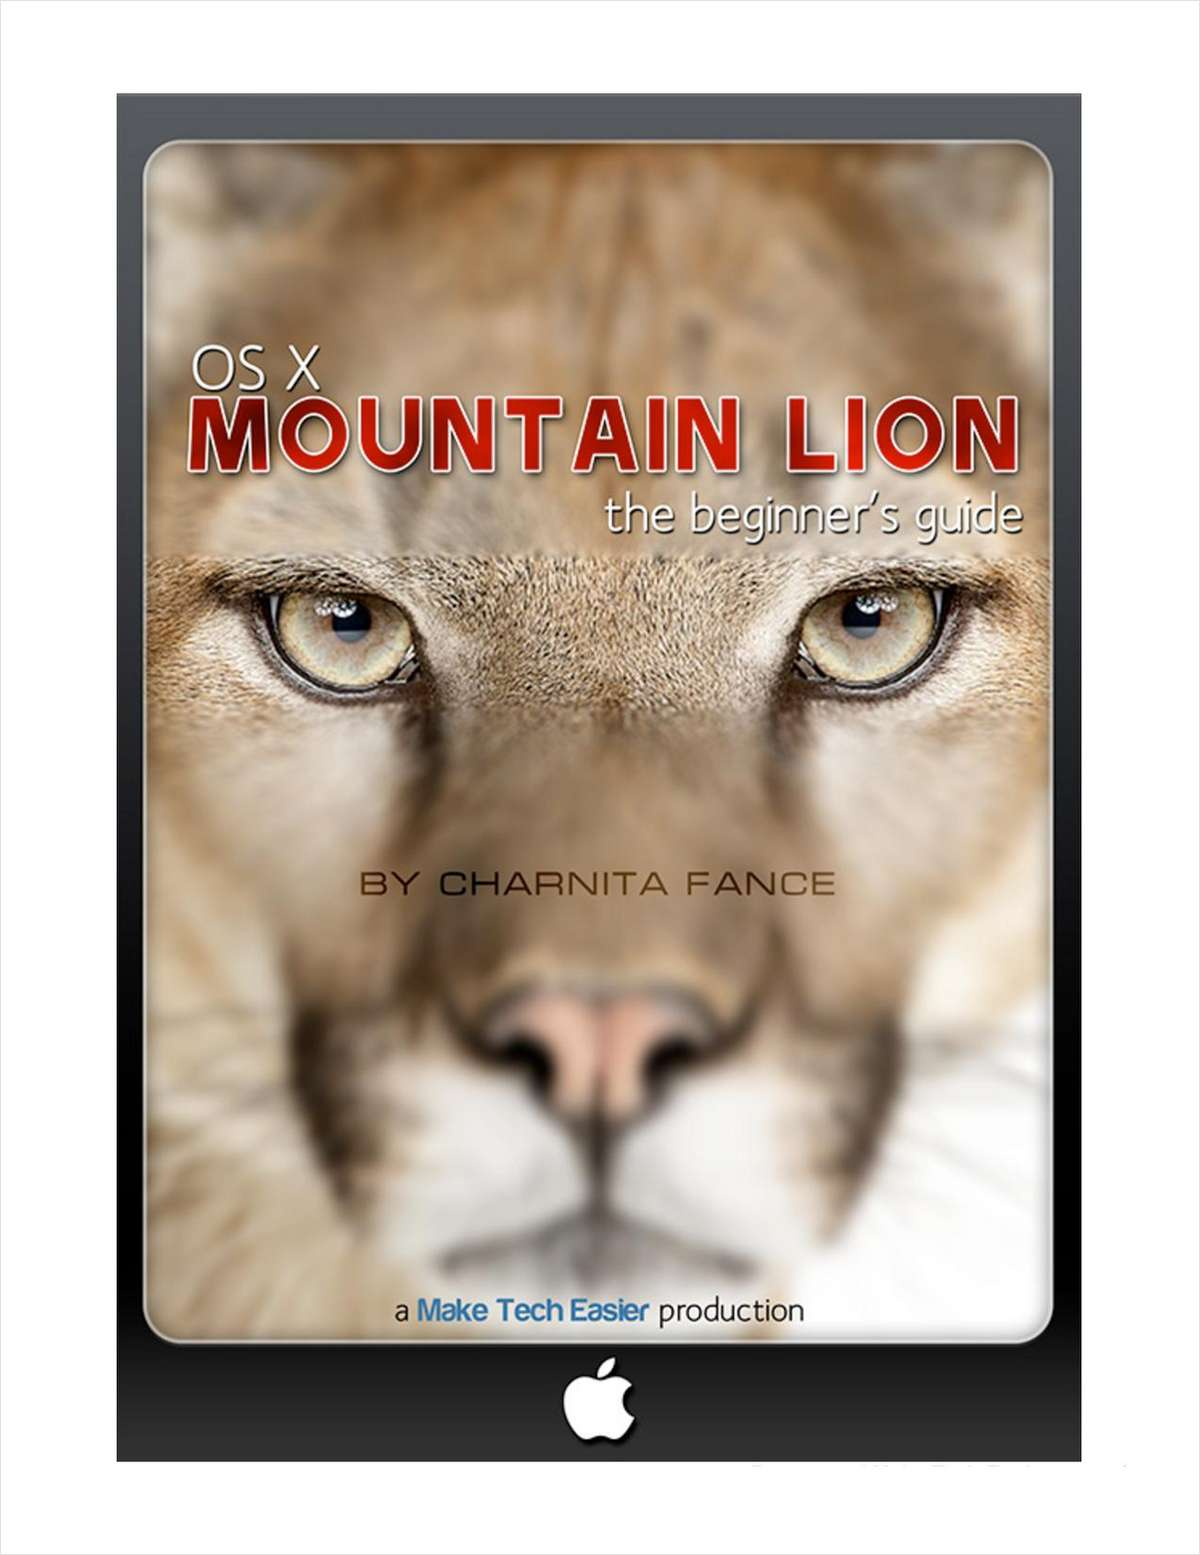 OS X Mountain Lion: A Beginner's Guide